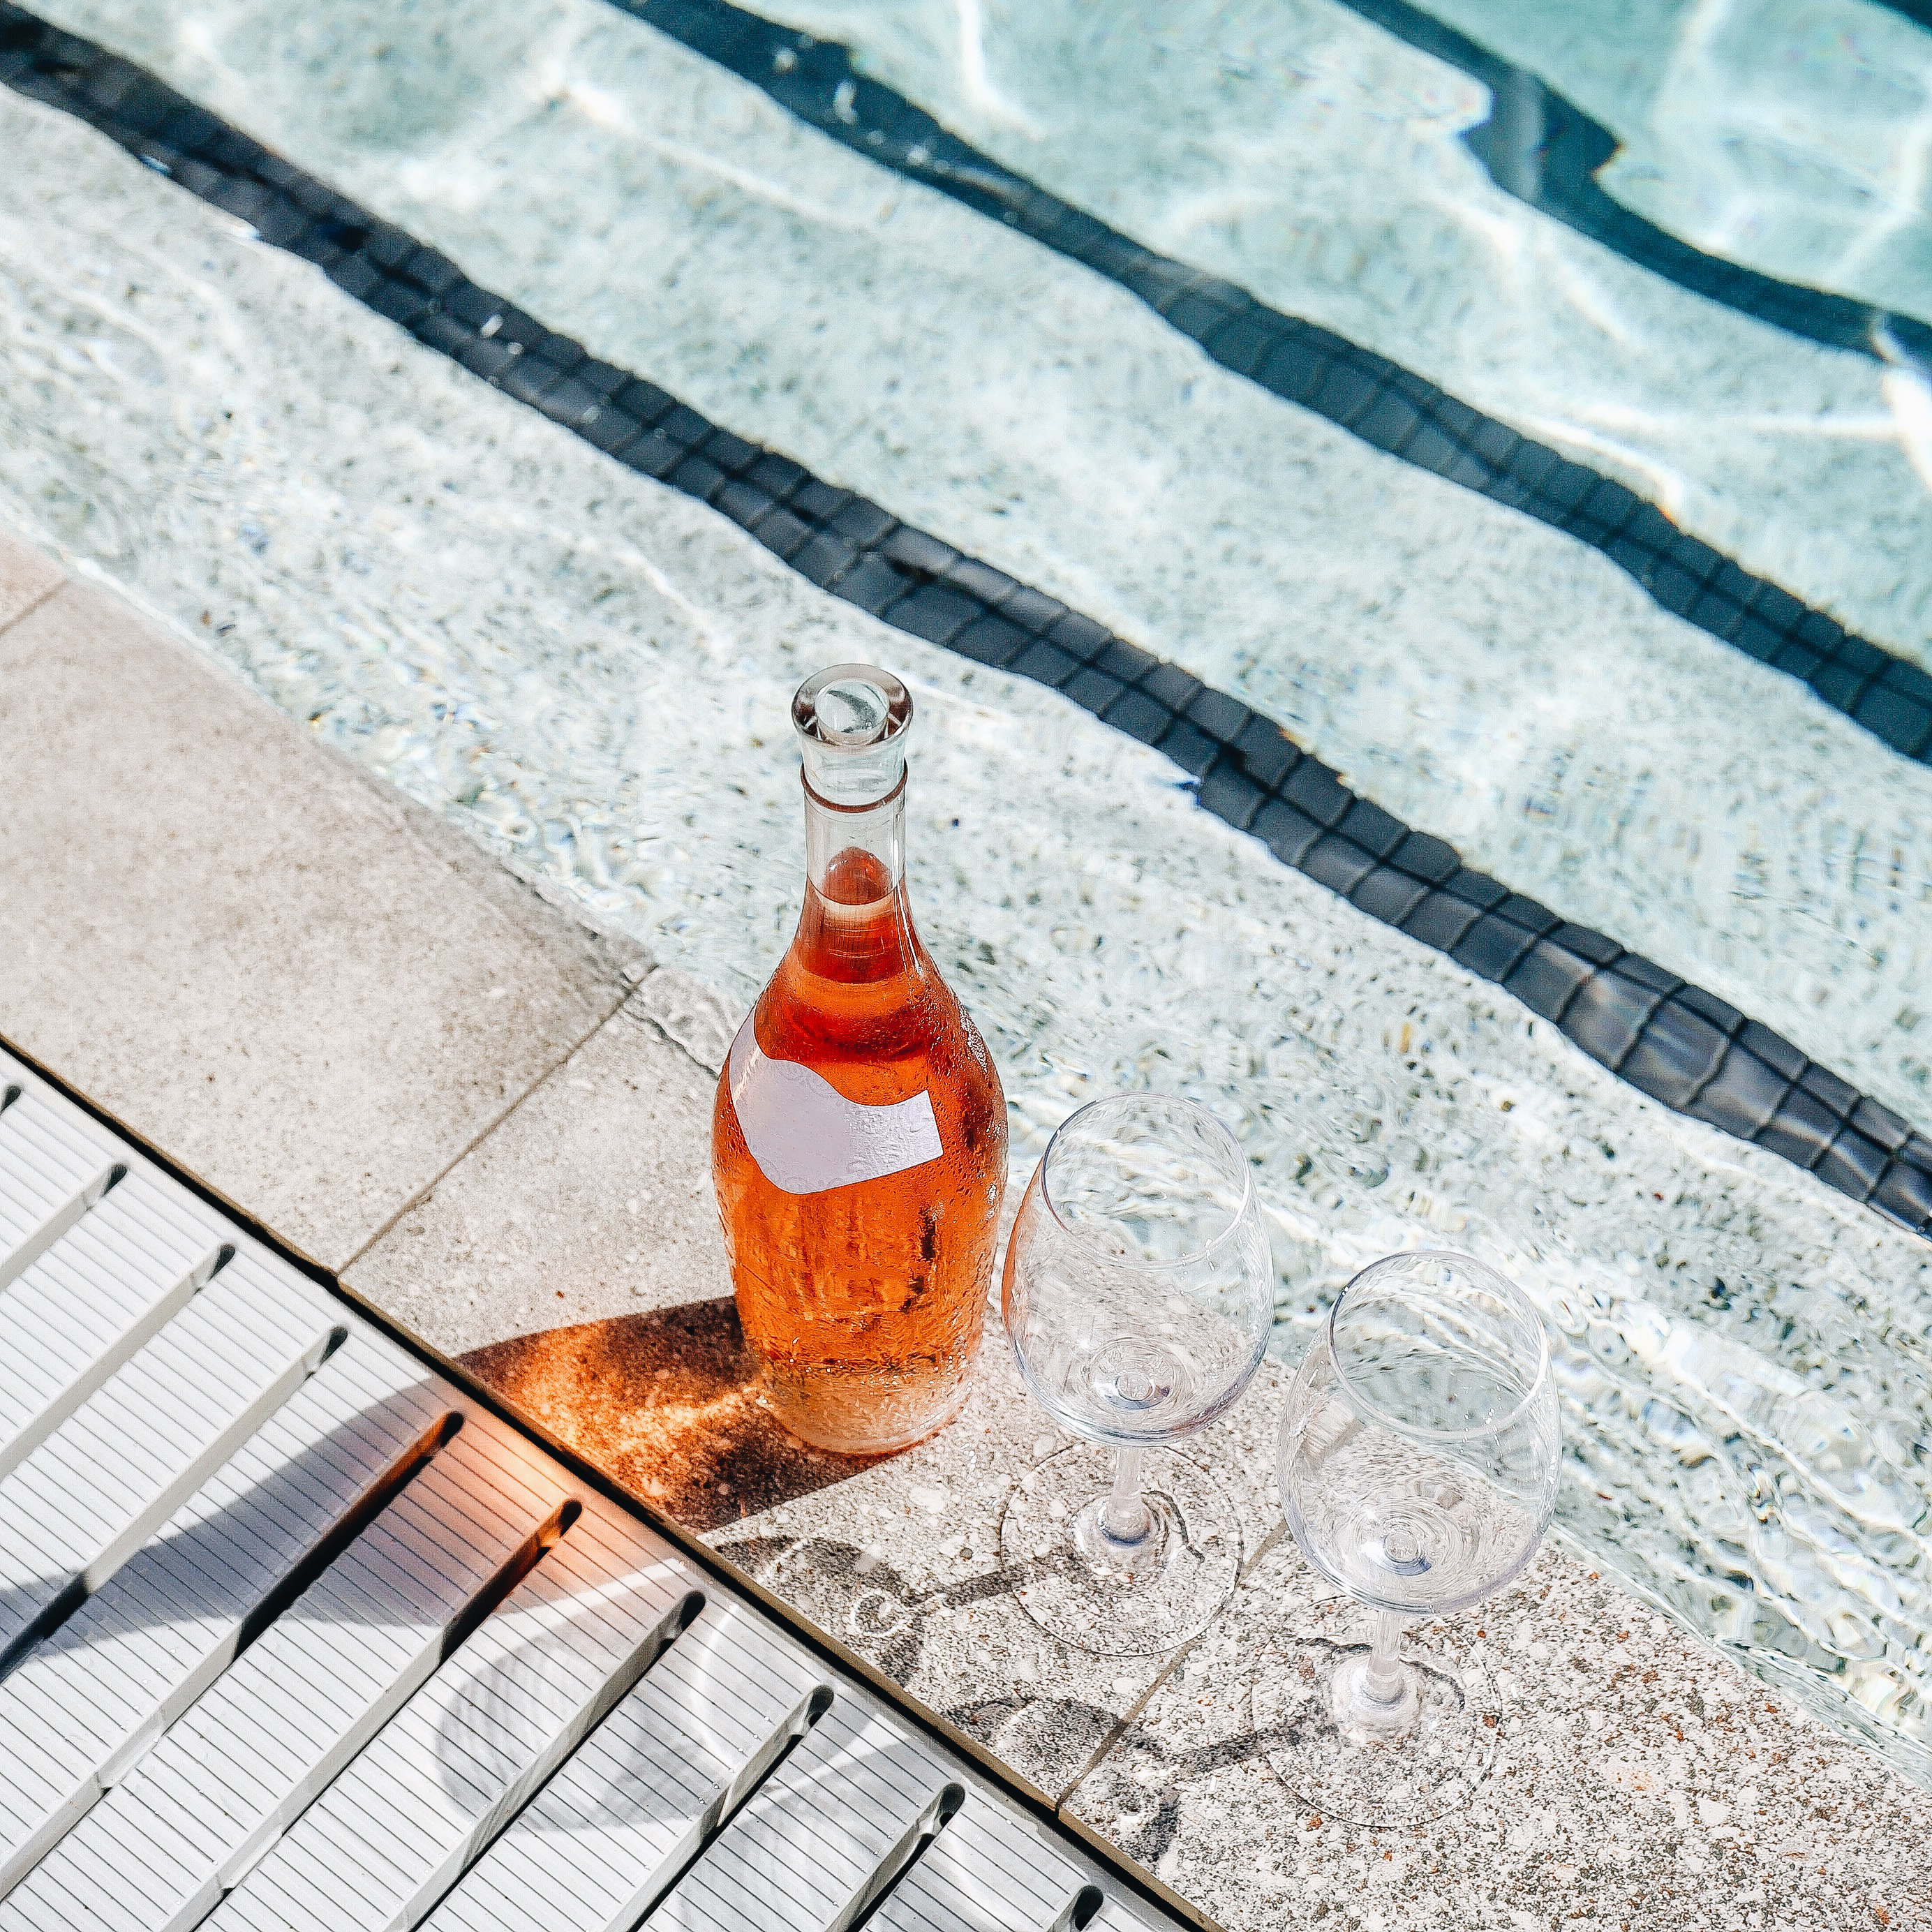 Nautilus by Arlo hotel pool with bottle of rose on pool deck and two glasses